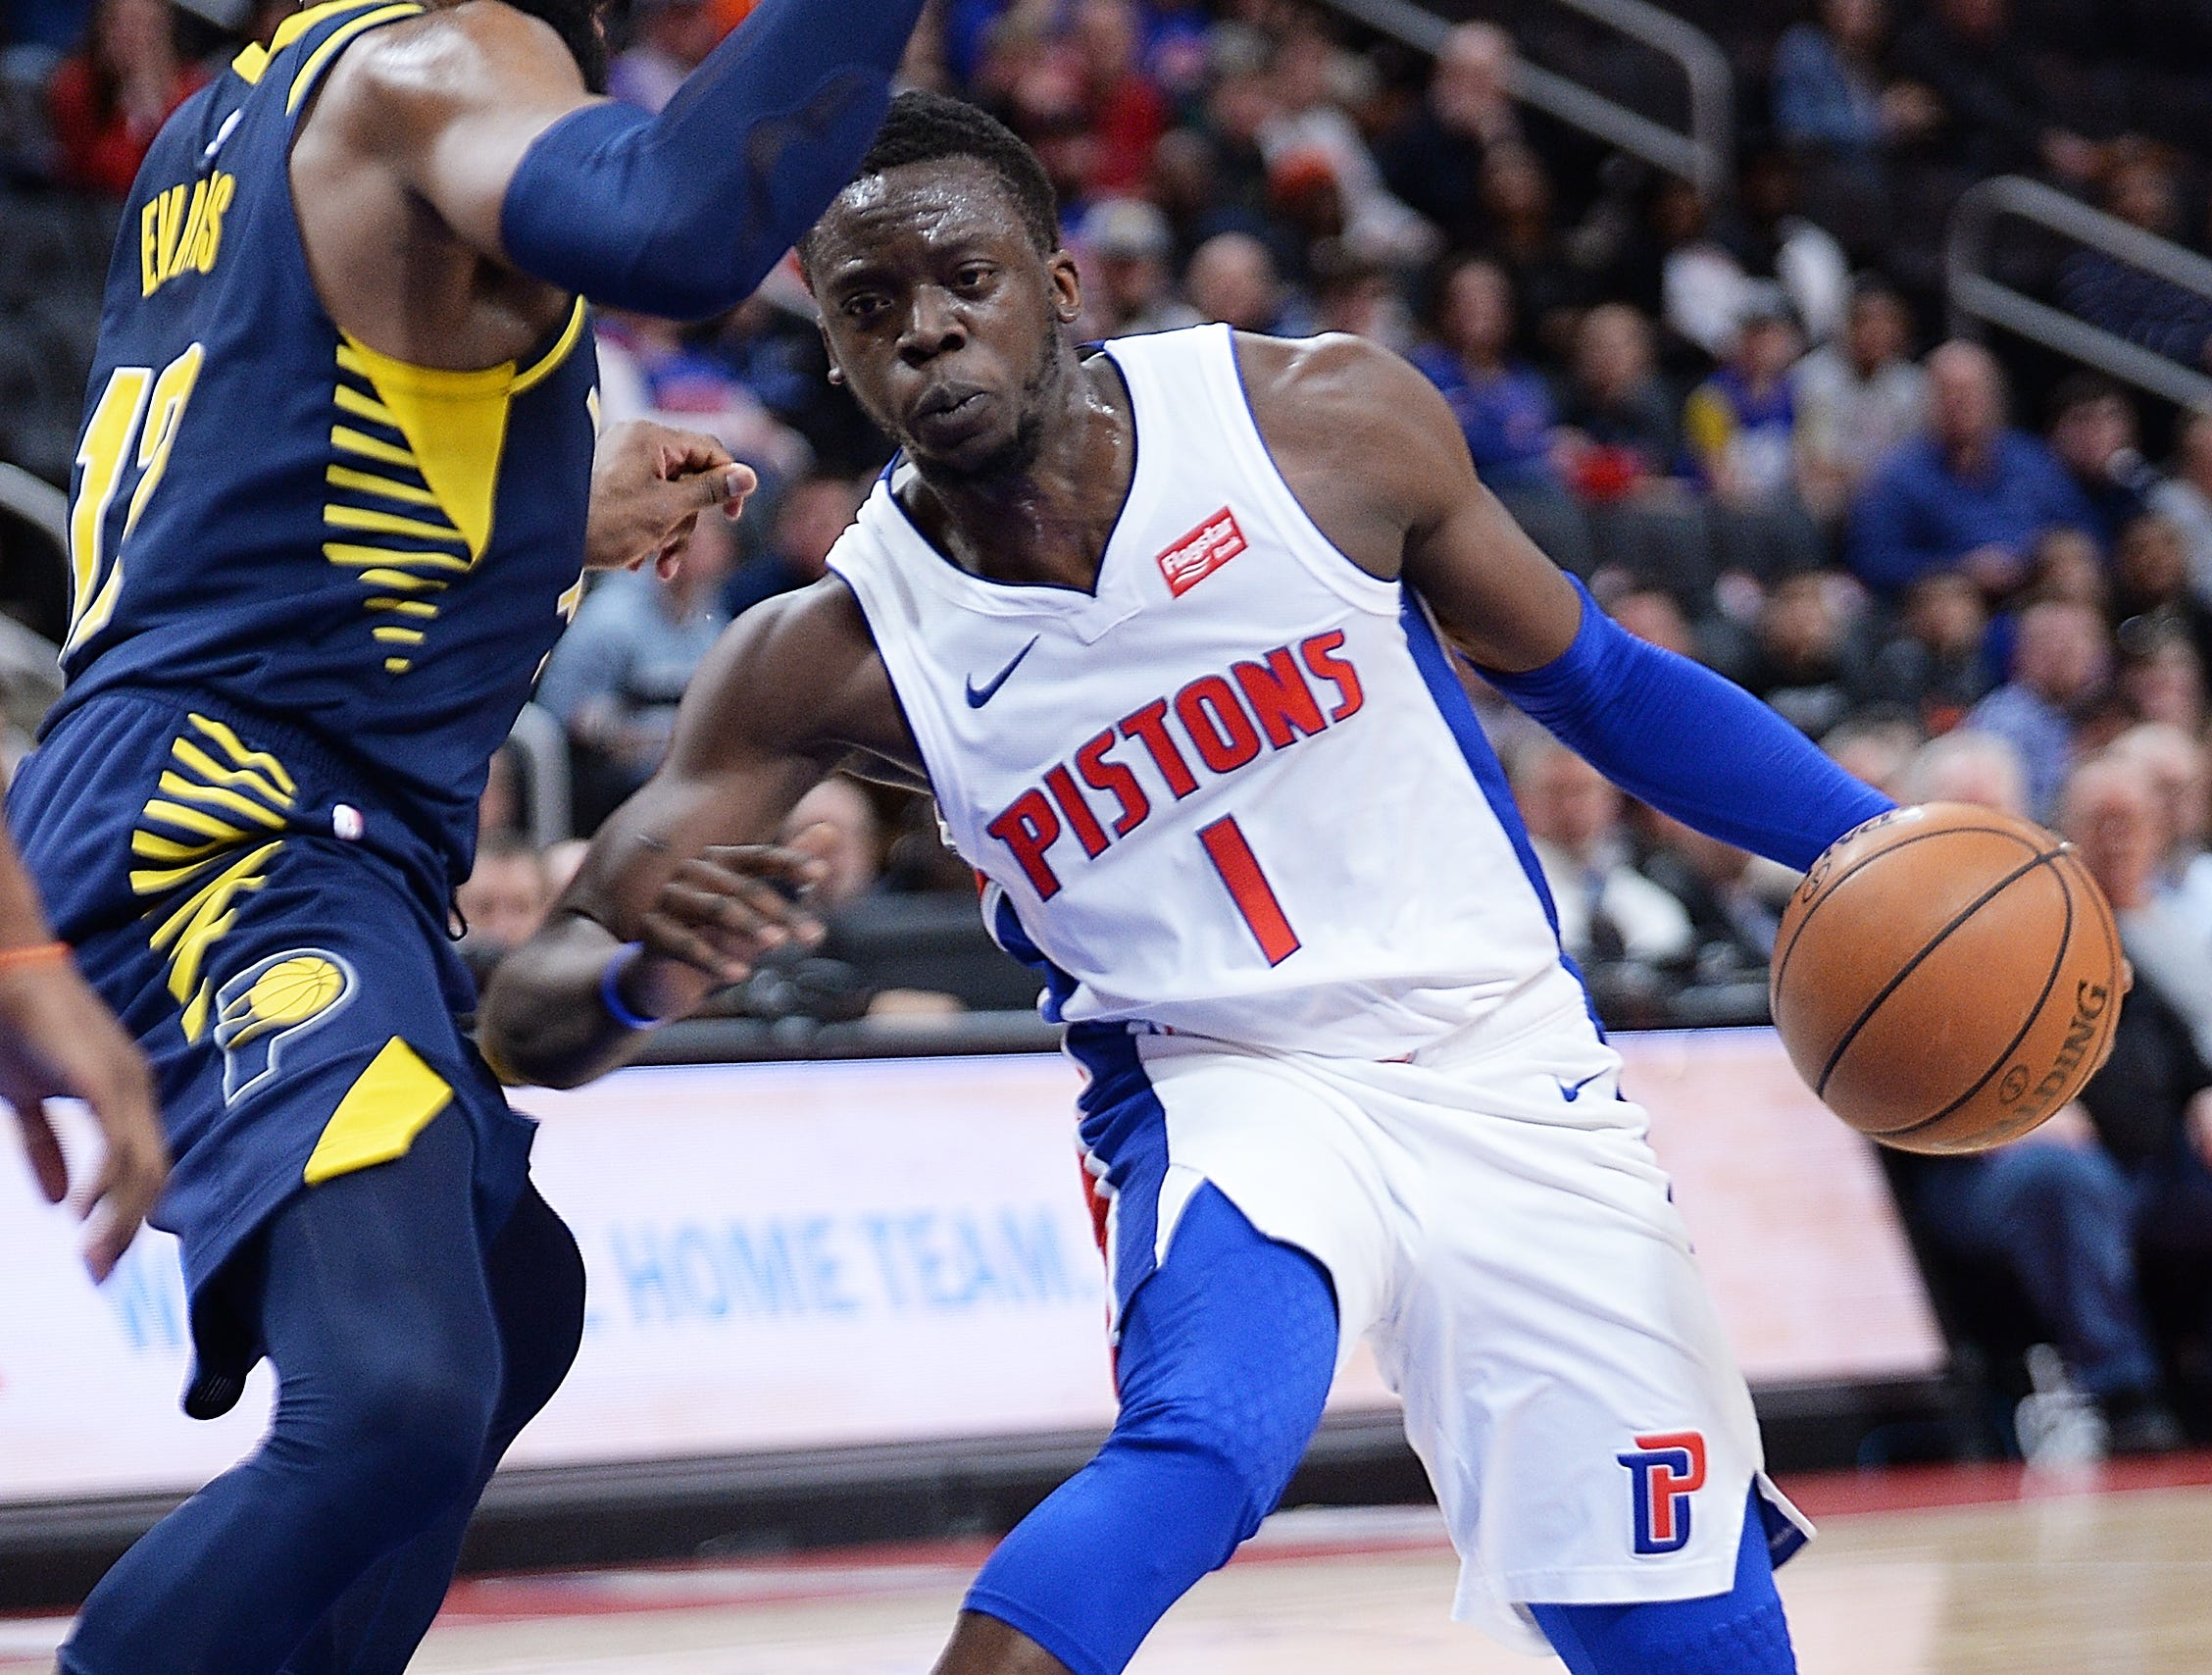 Pistons' Reggie Jackson drives around Pacers' Tyreke Evans in the first quarter.